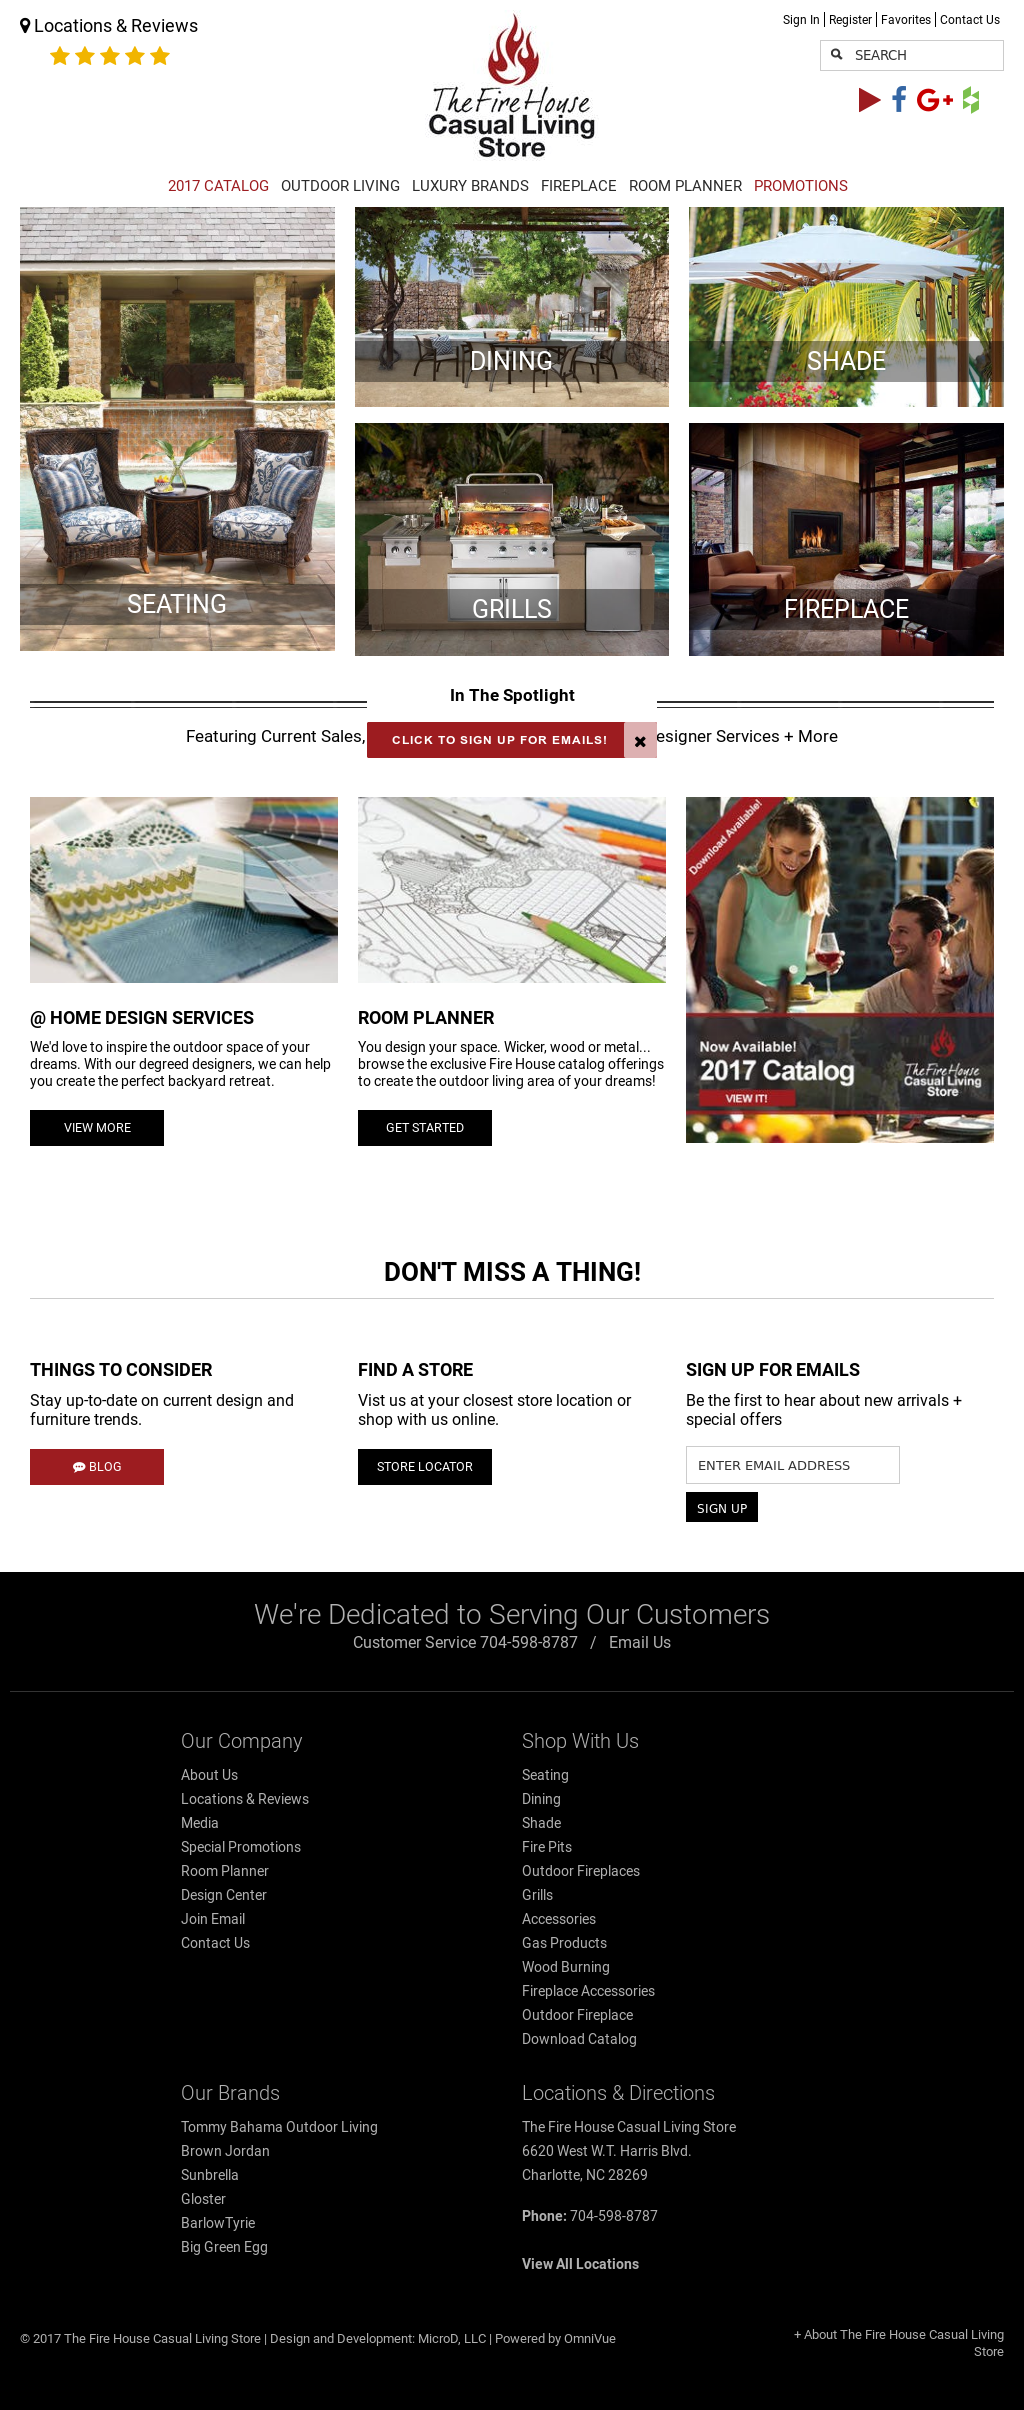 Superieur Firehouse Casual Living Store Website History